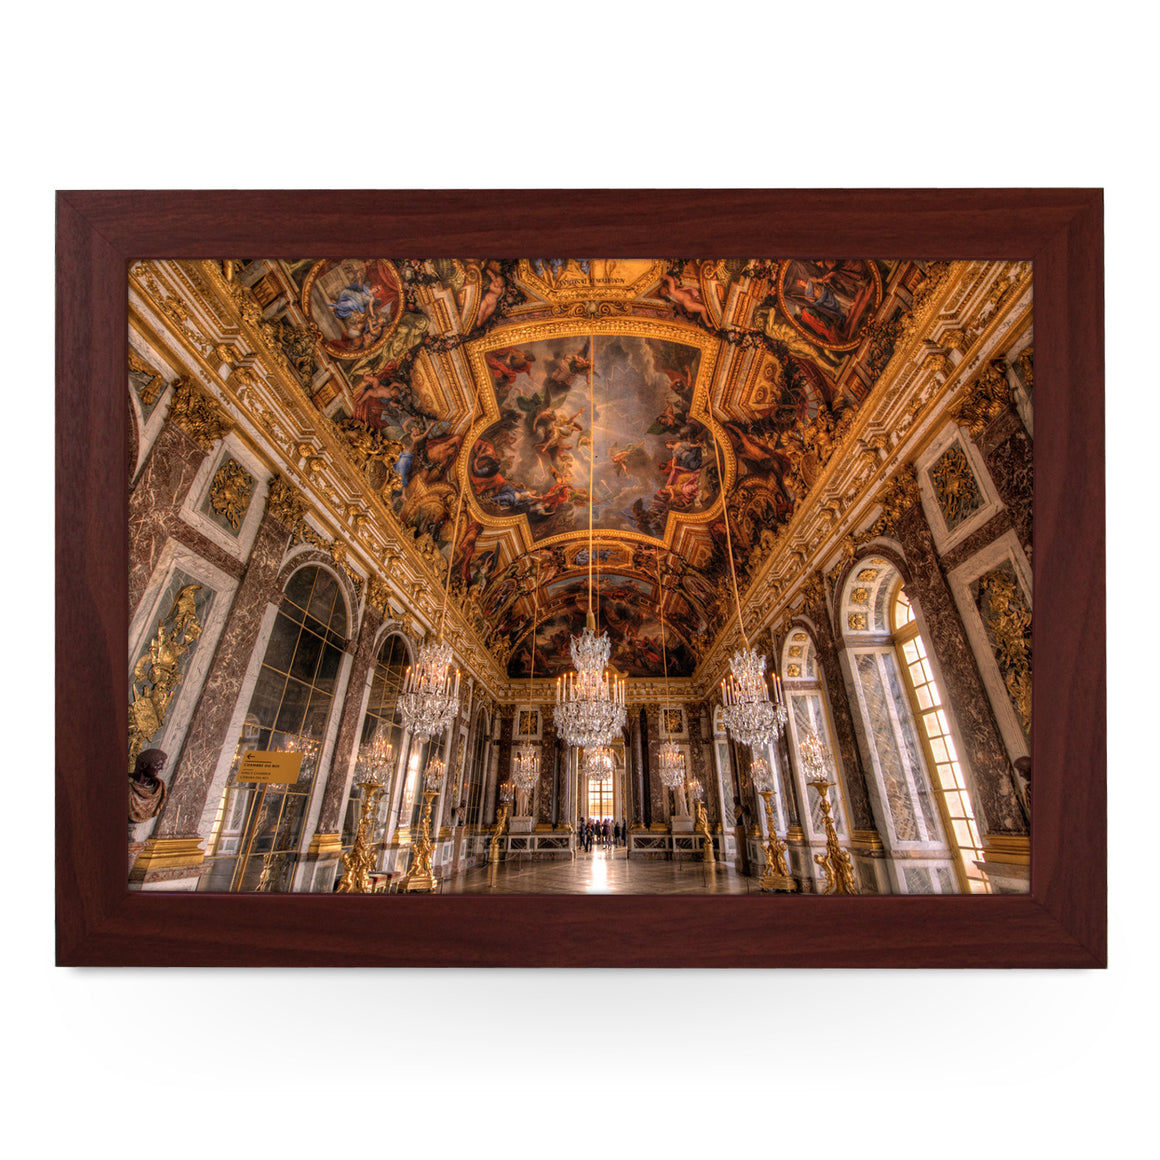 Palace Of Versailles Hall Of Mirrors Lap Tray - L0128